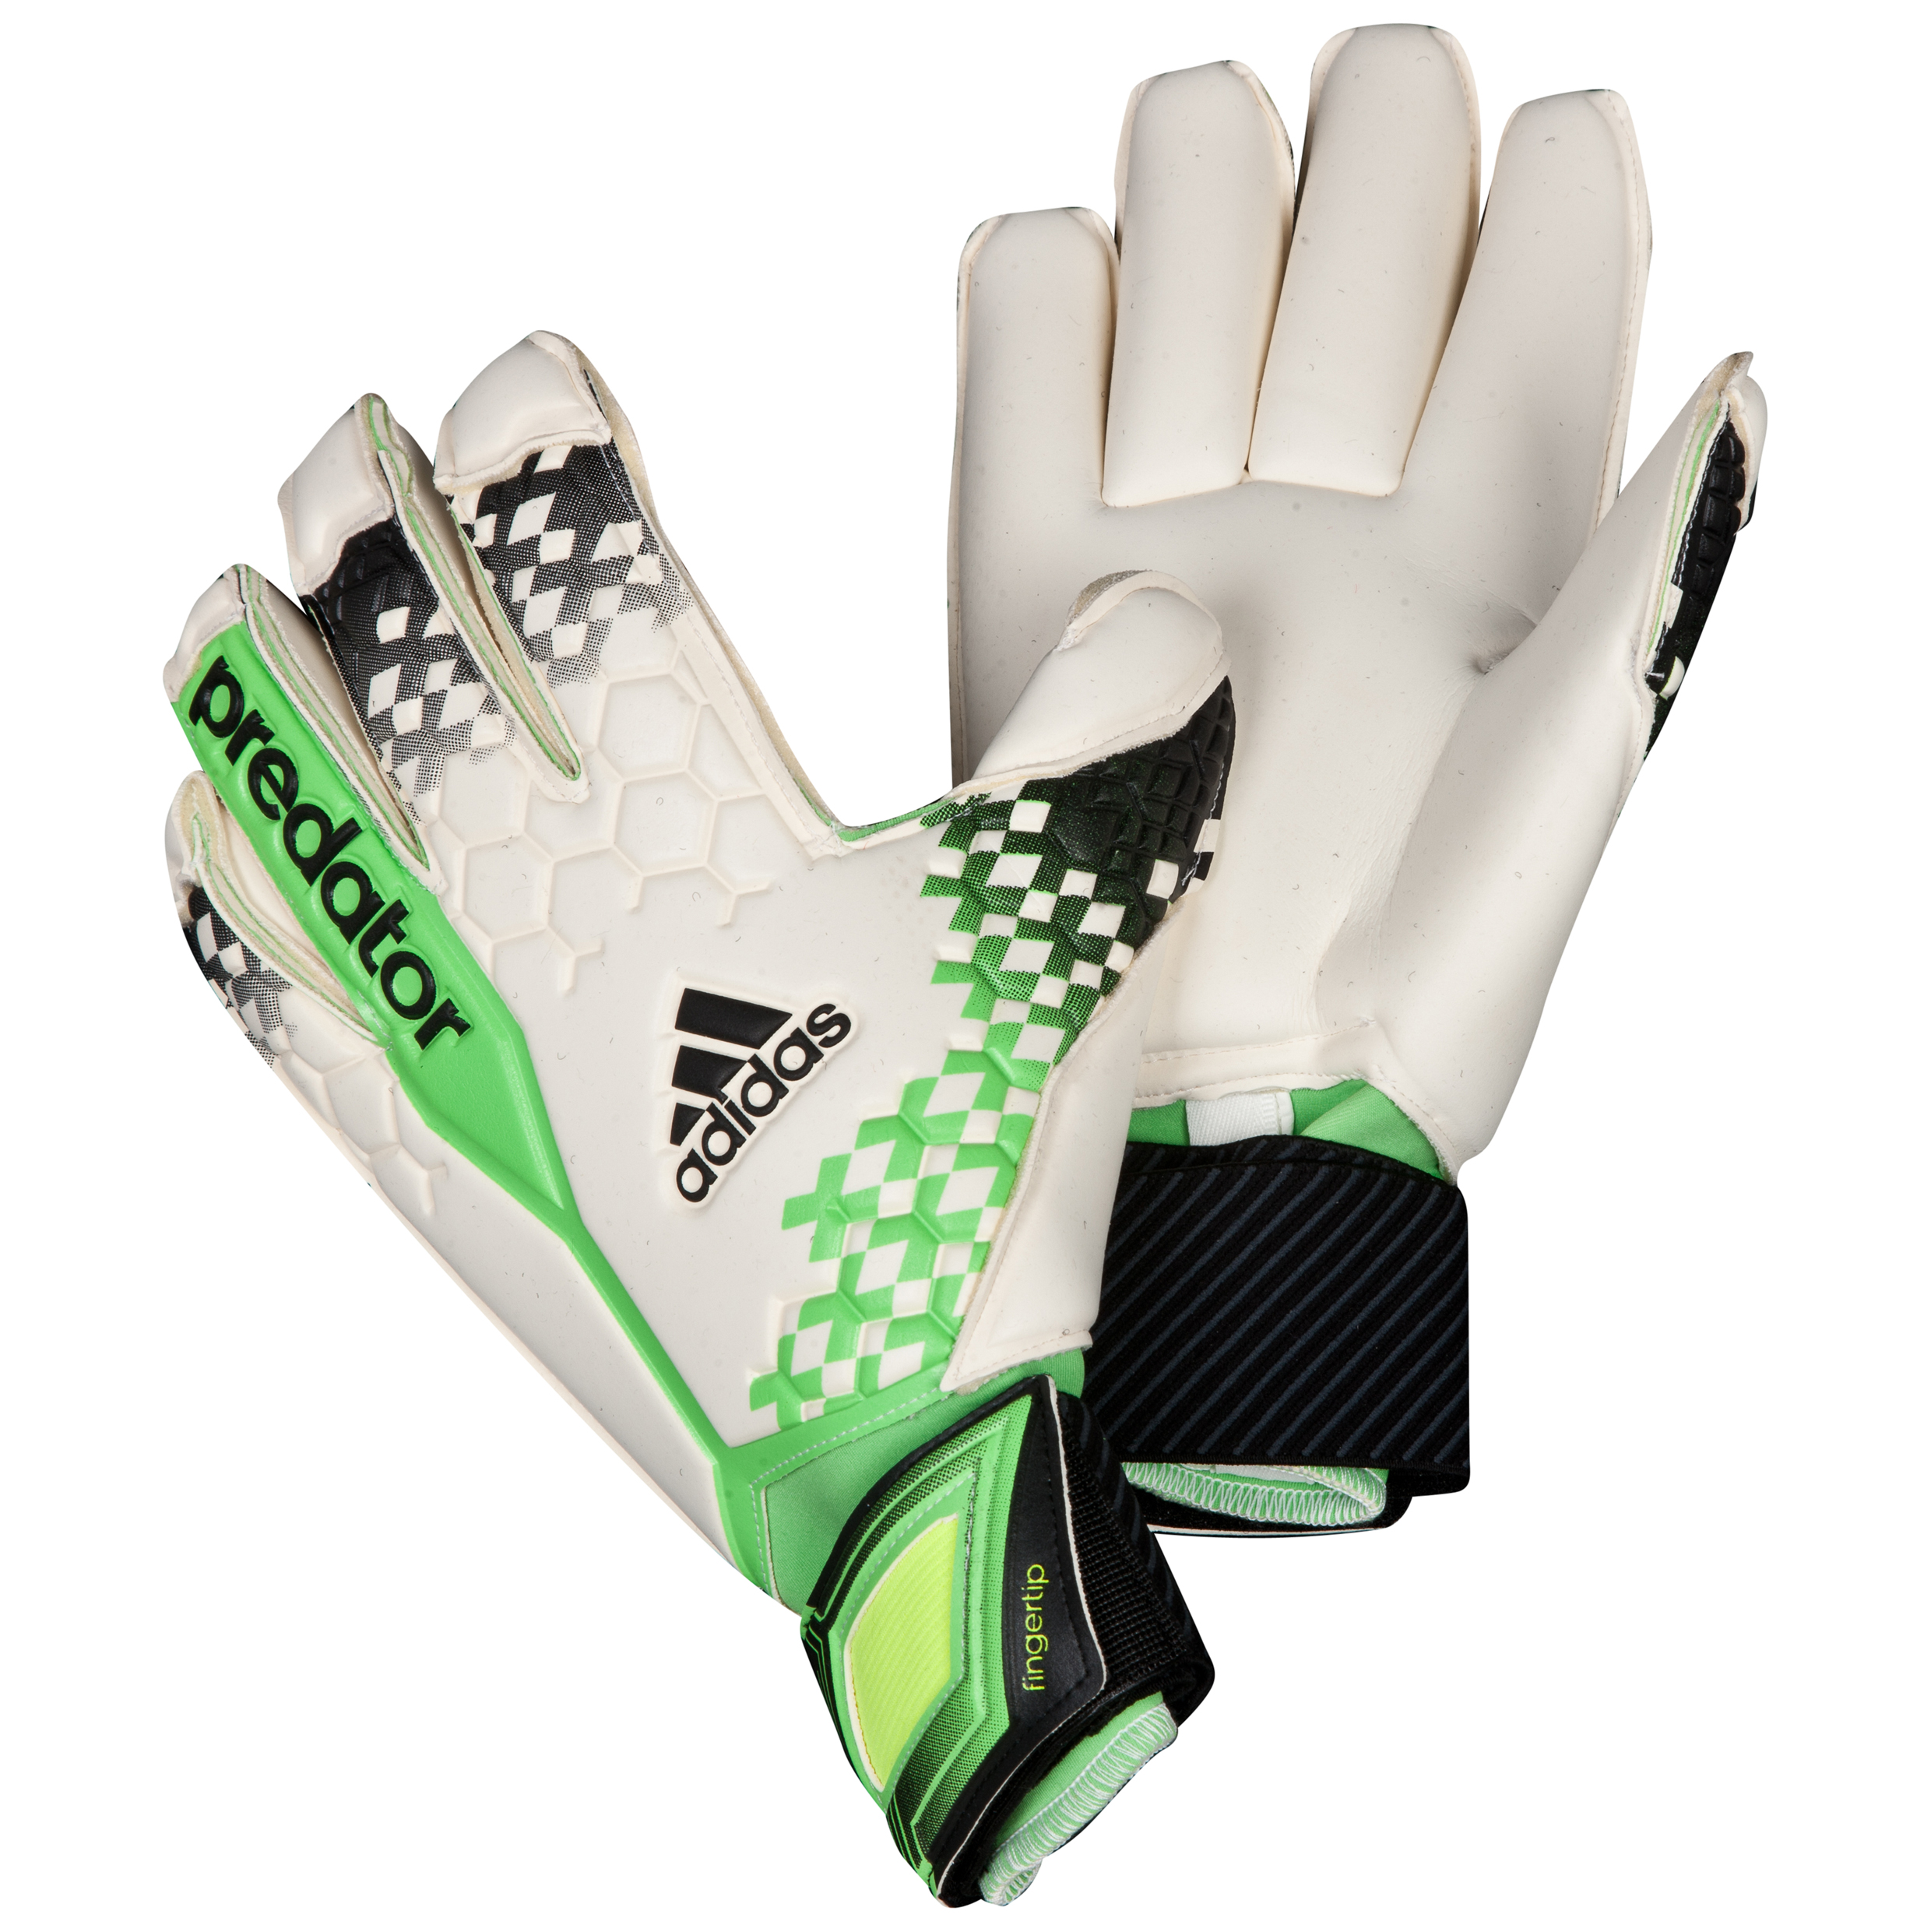 Adidas Predator Finger Tip Goalkeeper Gloves White